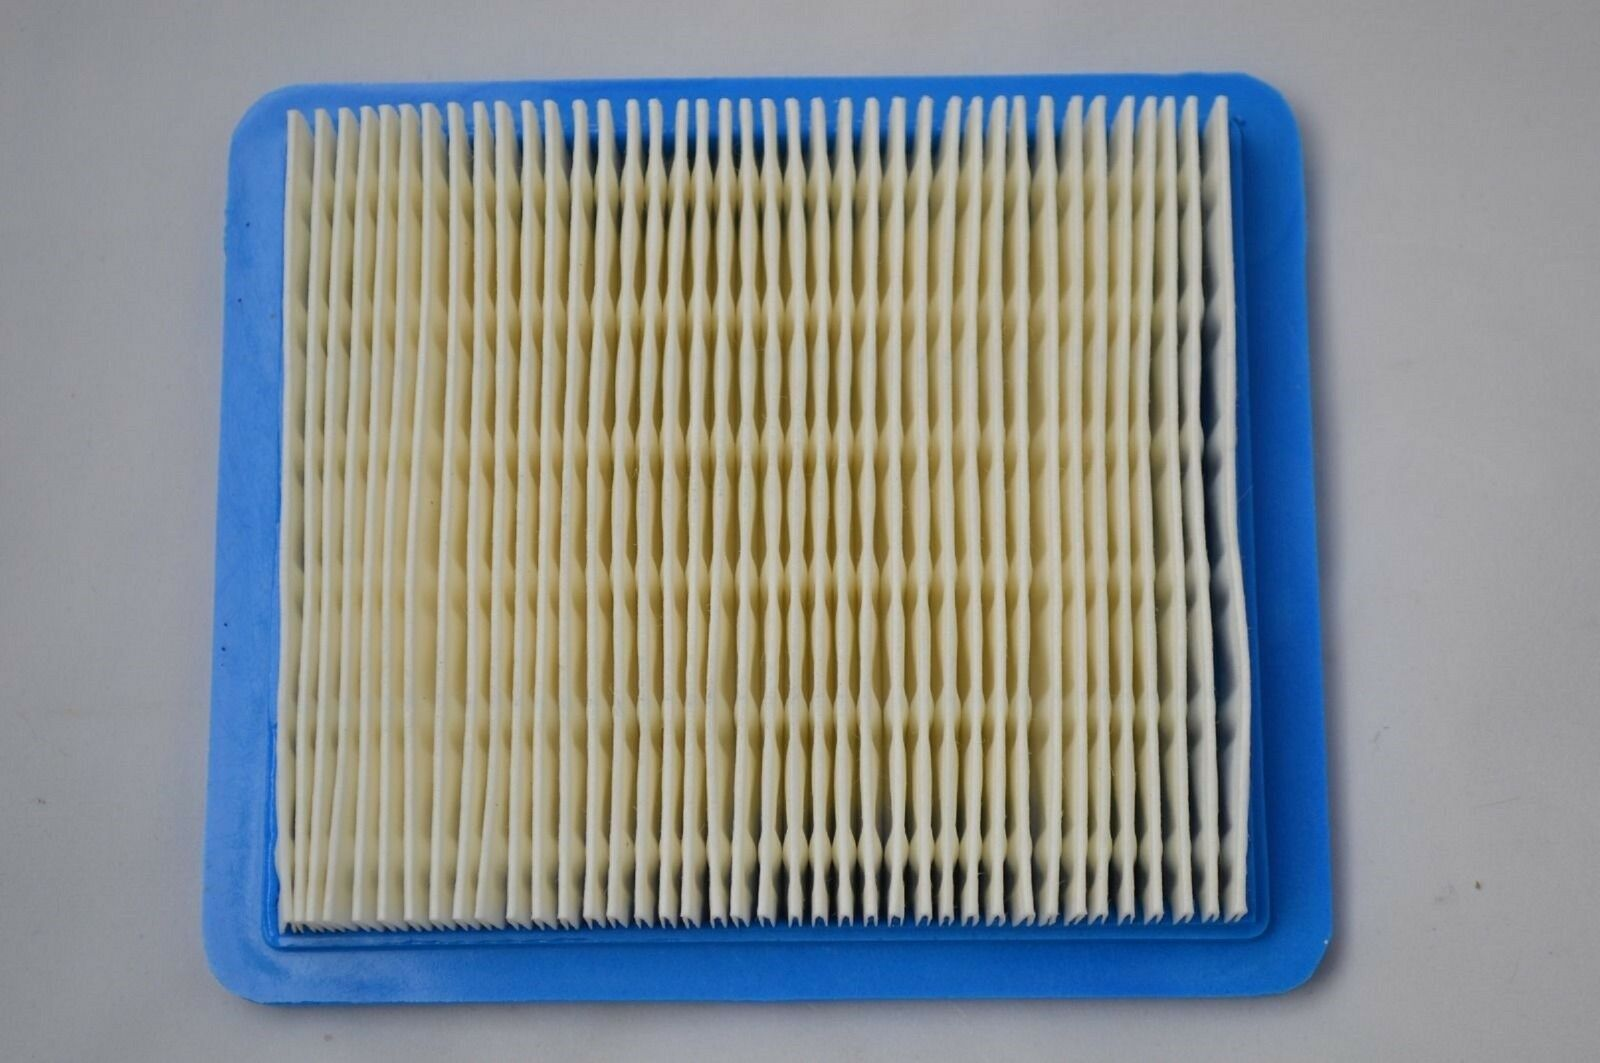 NEW REPLACEMENT Air Filter For BRIGGS AND STRATTON 399959, 494245 - $4.03